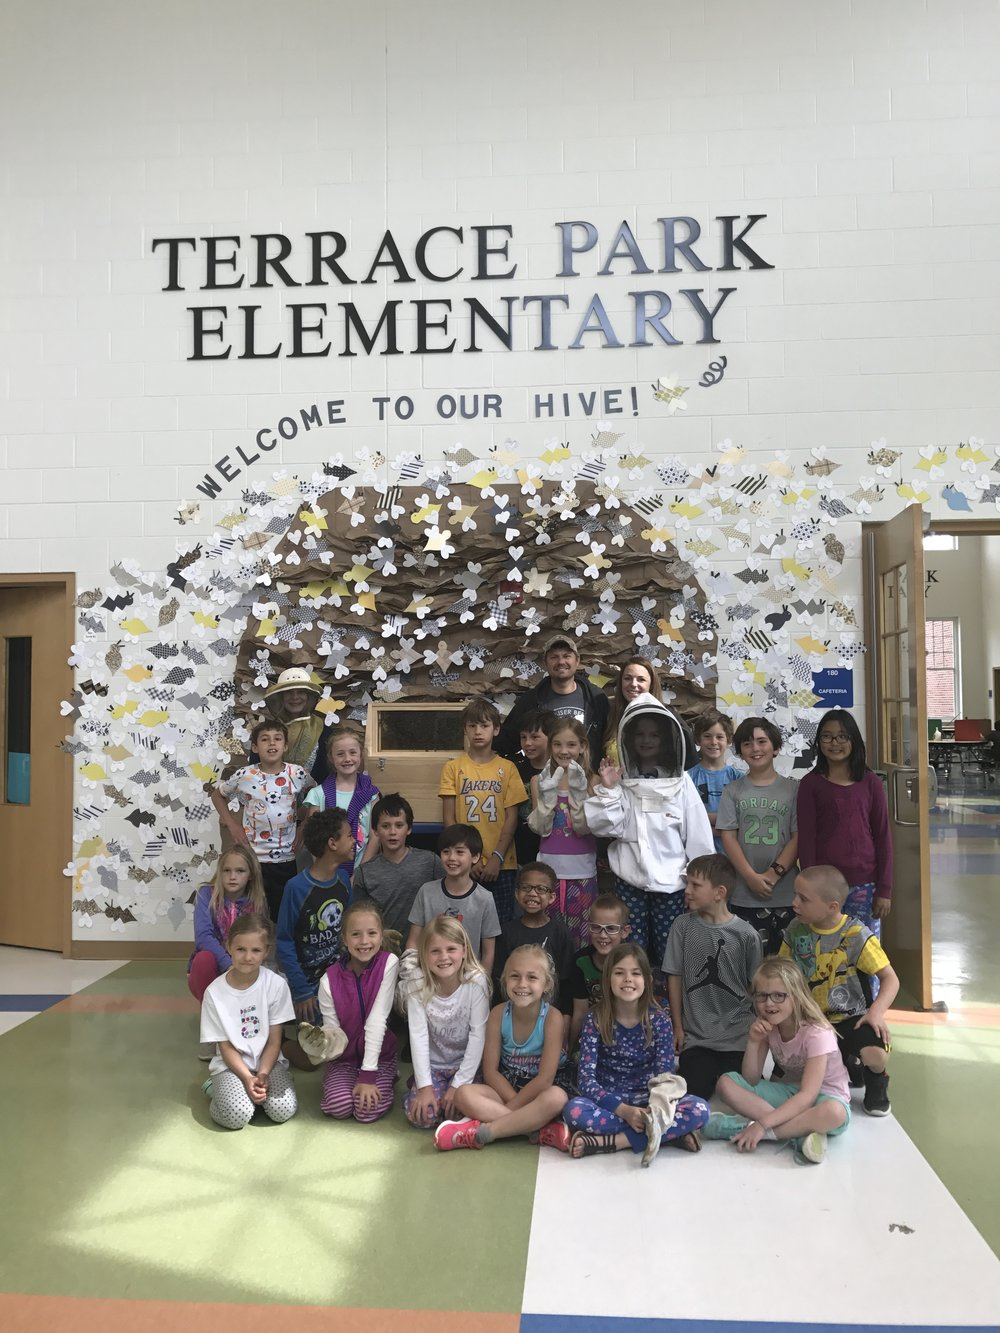 Terrace Park Elementary School Cincinnati Ohio Host A Hive Gaiser Bee Co.